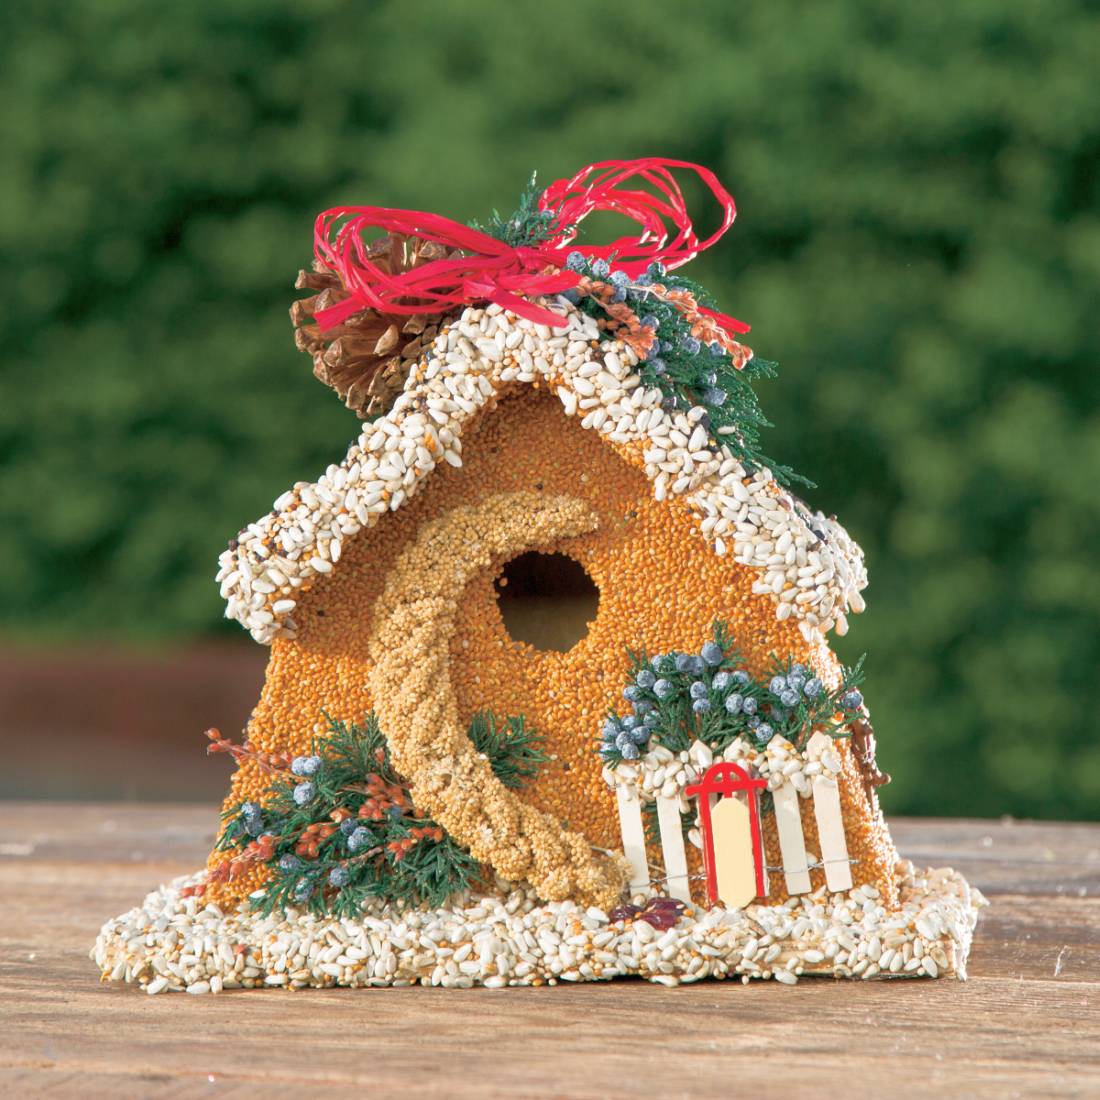 Birdie's Bed & Breakfast Chalet Edible Birdhouse